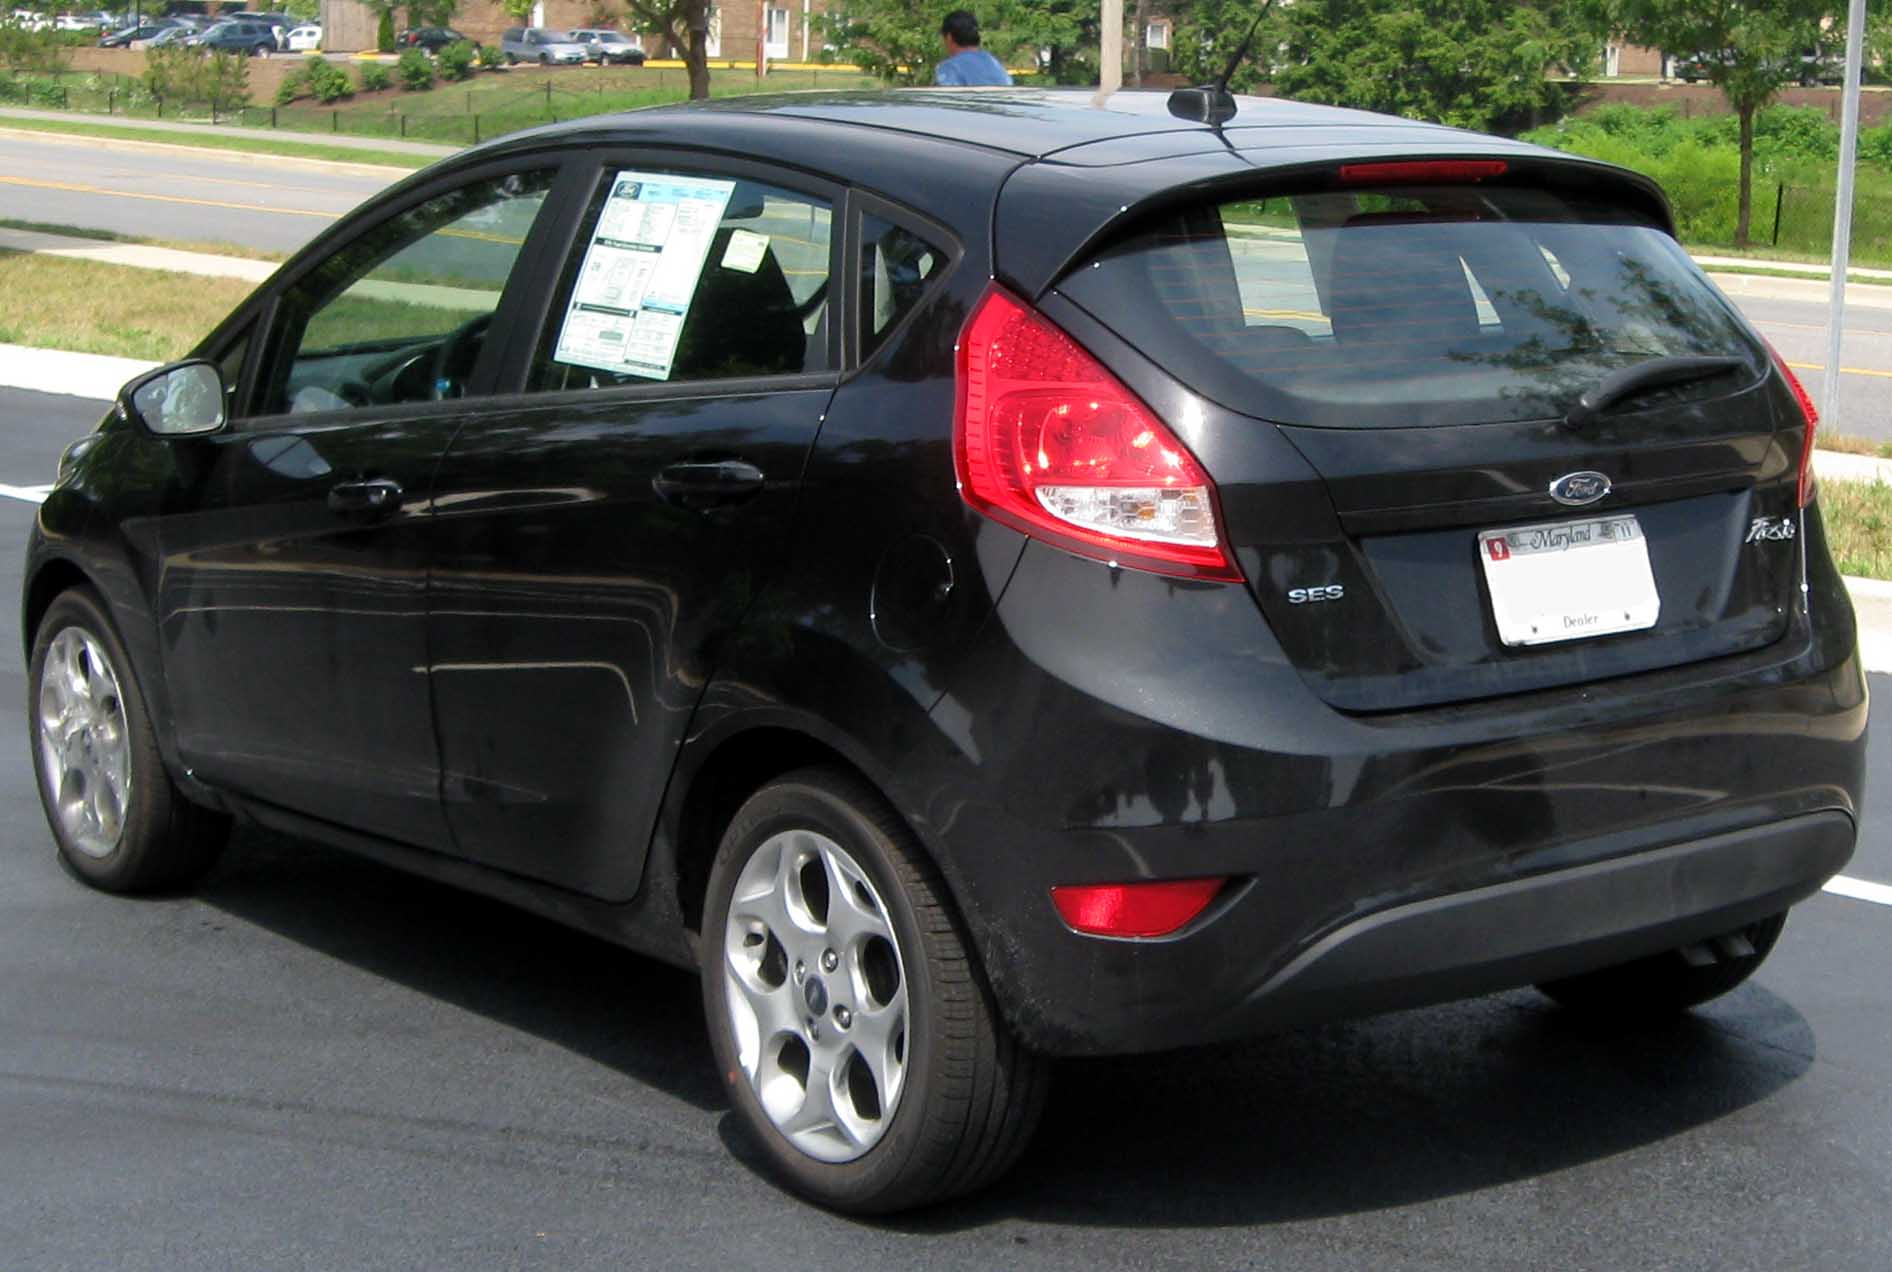 Fort Dodge Ford >> Ford Fiesta 2010: Review, Amazing Pictures and Images – Look at the car